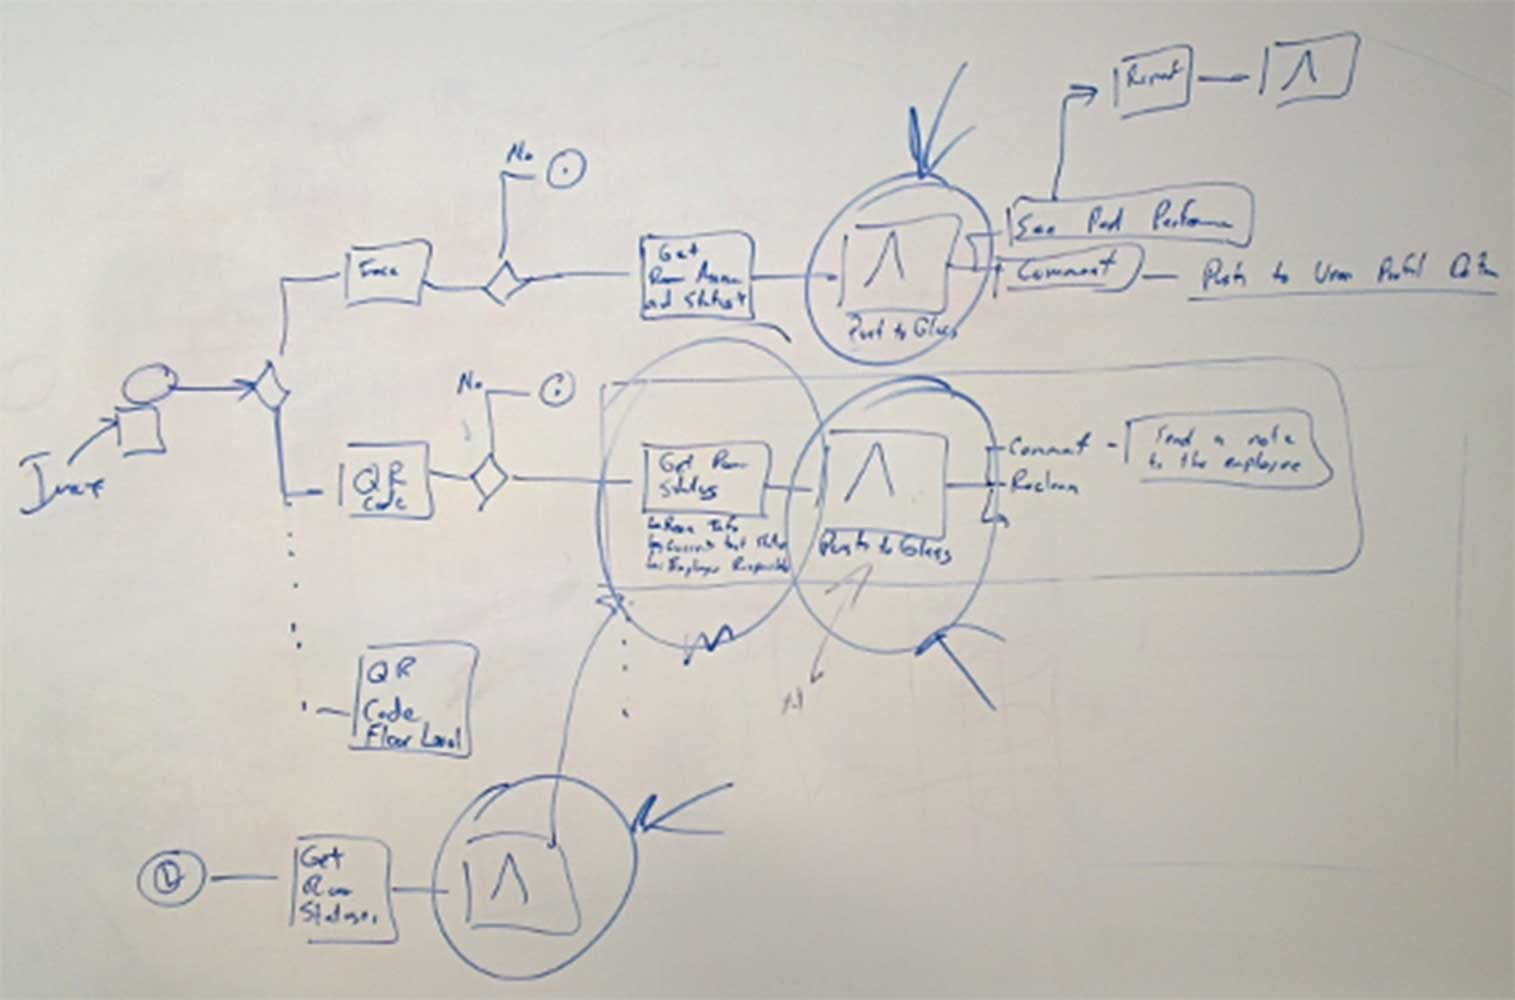 Visual Workflow Management on Whiteboard